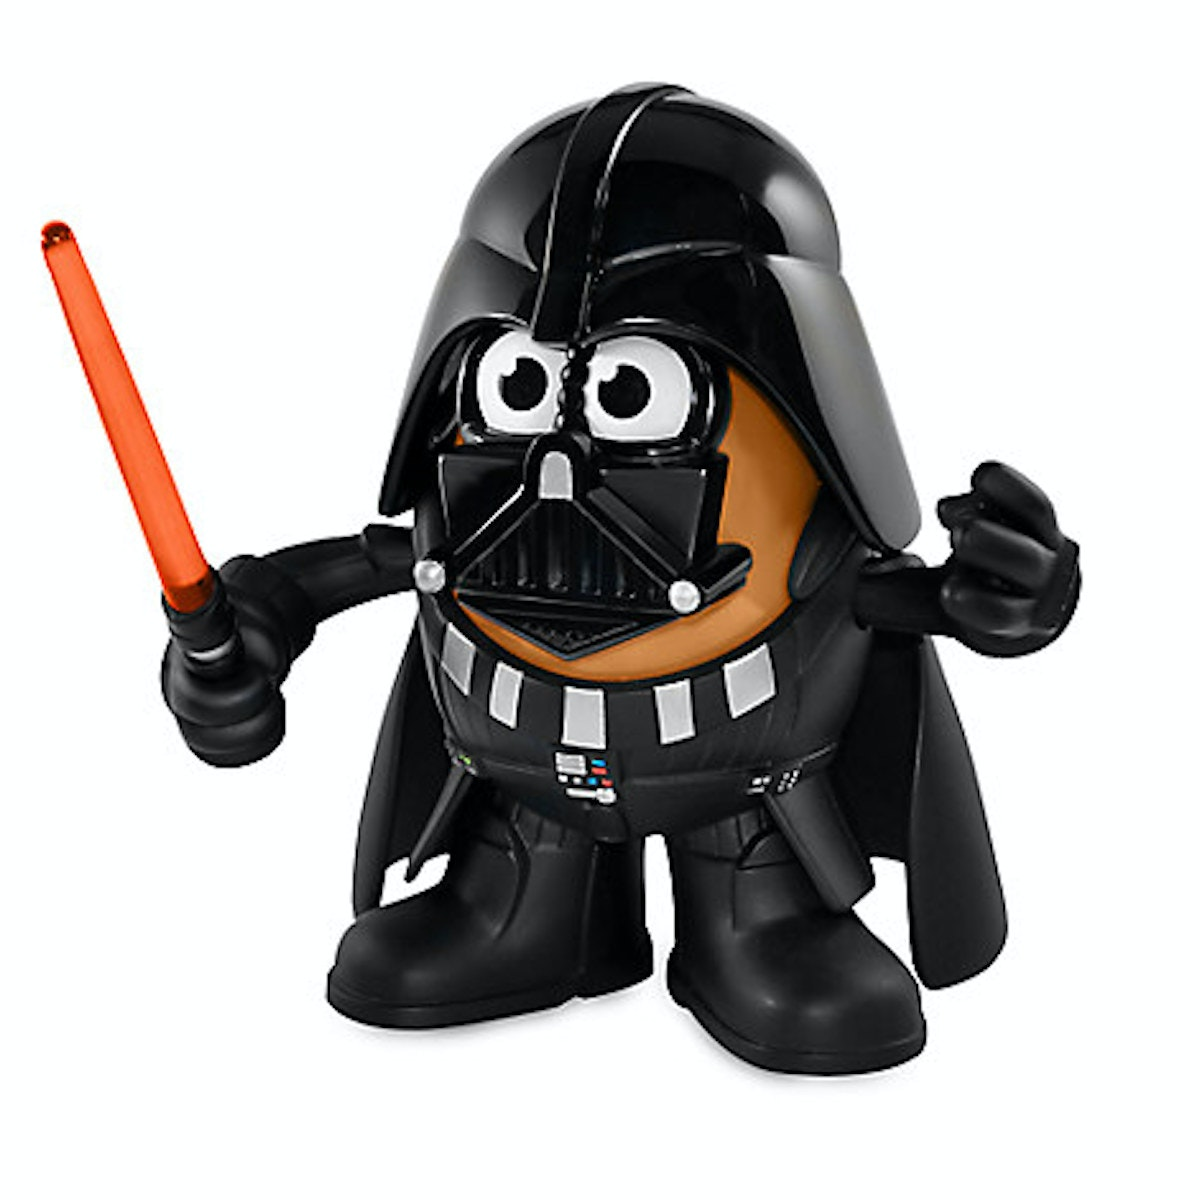 This Darth Vader Mr. Potato Head